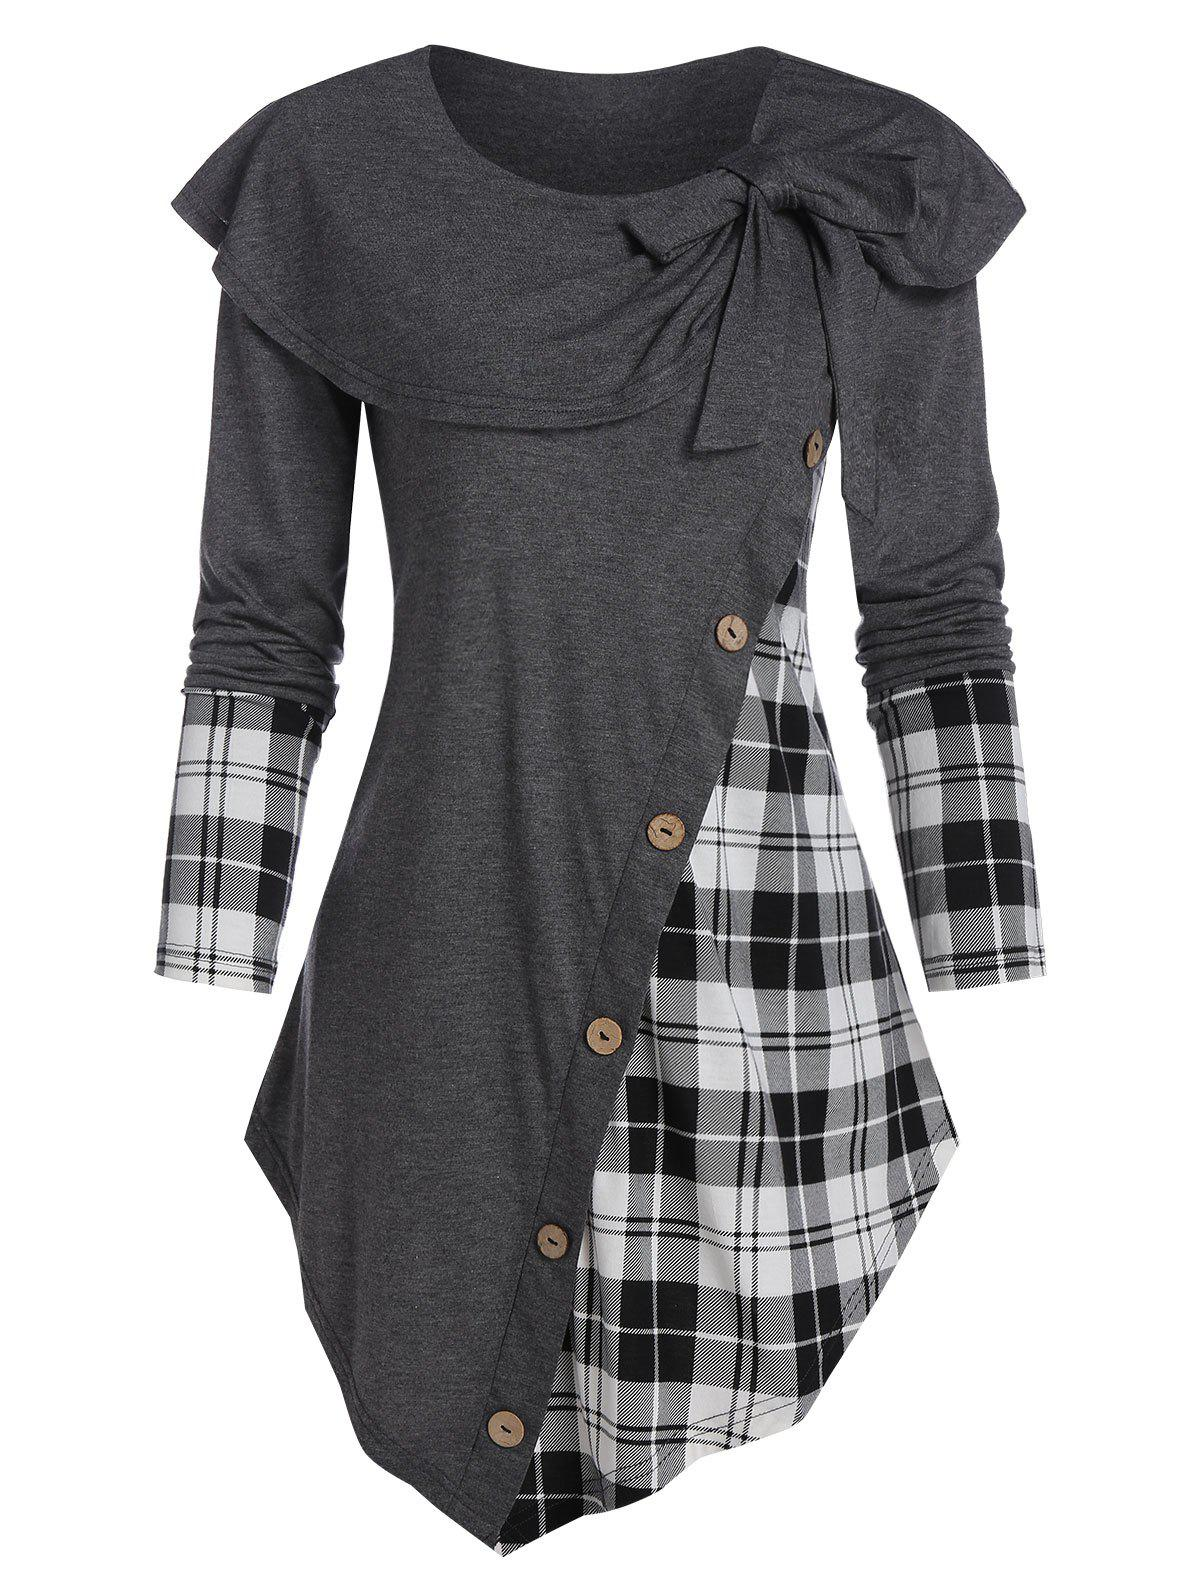 Fashion Bowknot Plaid Asymmetric T Shirt